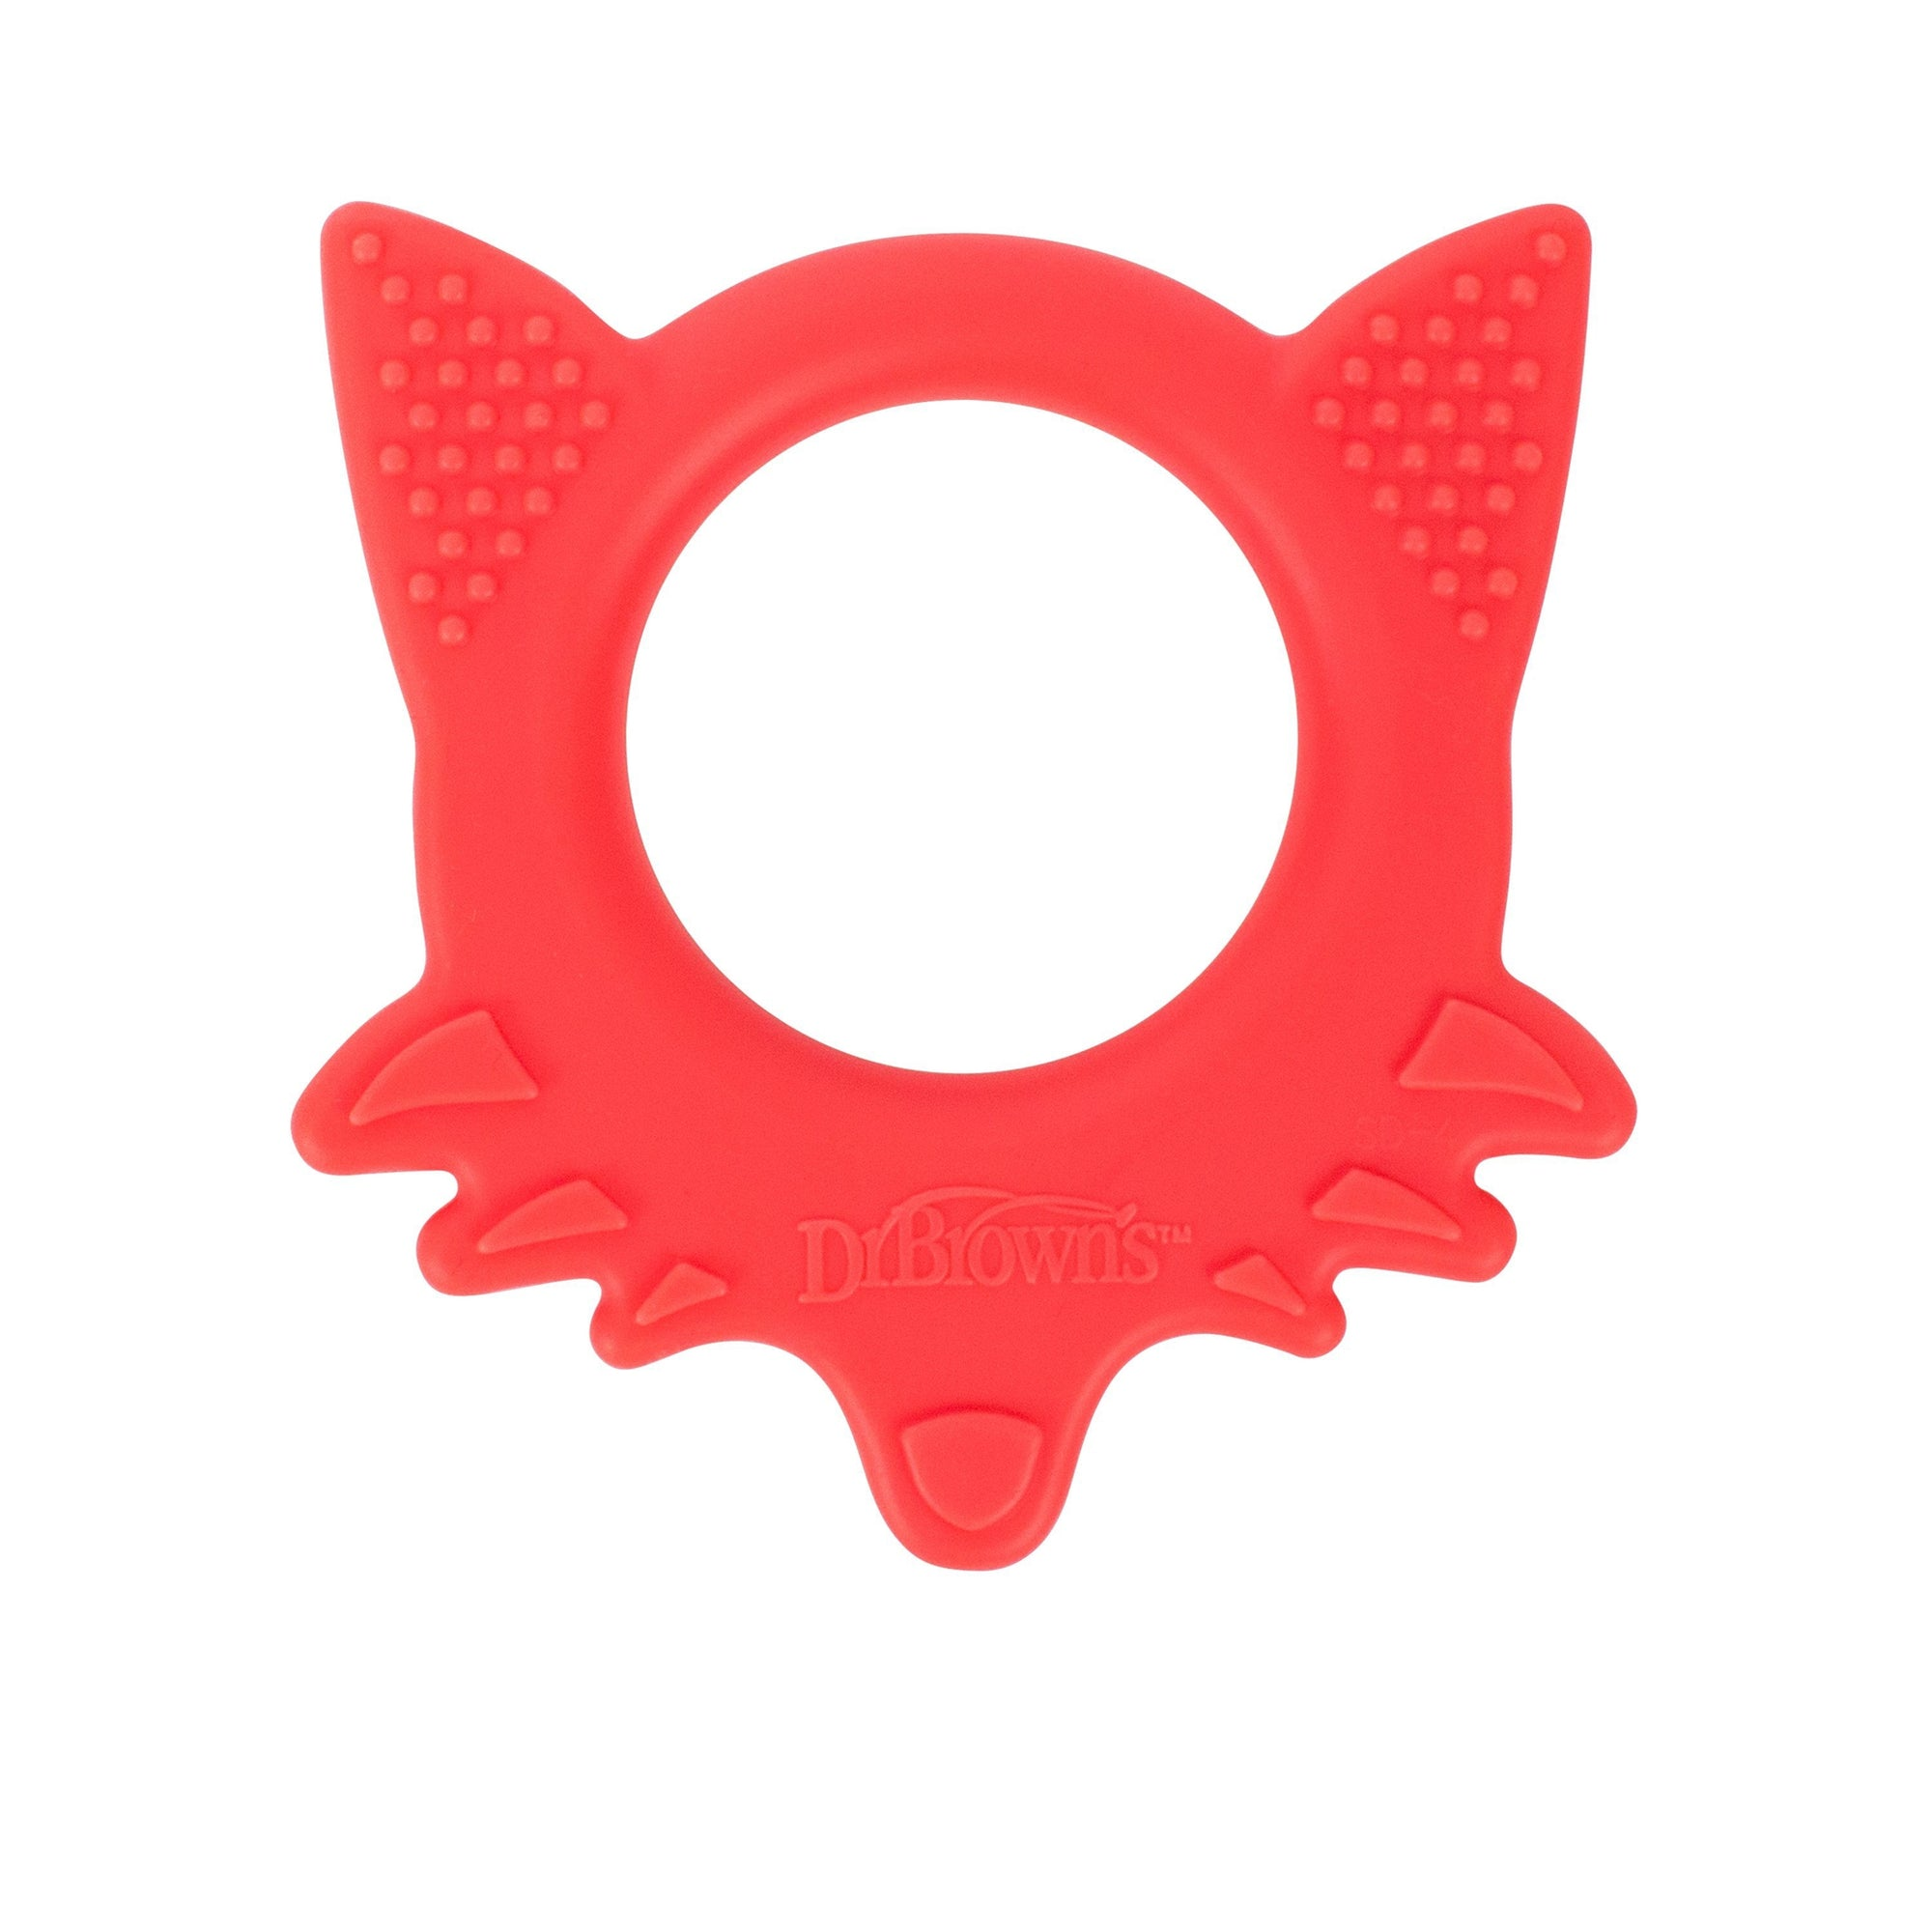 Dr. Brown's Flexees Friends Fox Teether - Red-Teether-Mother and Baby Shop Kenya's #1 Online Baby Shop